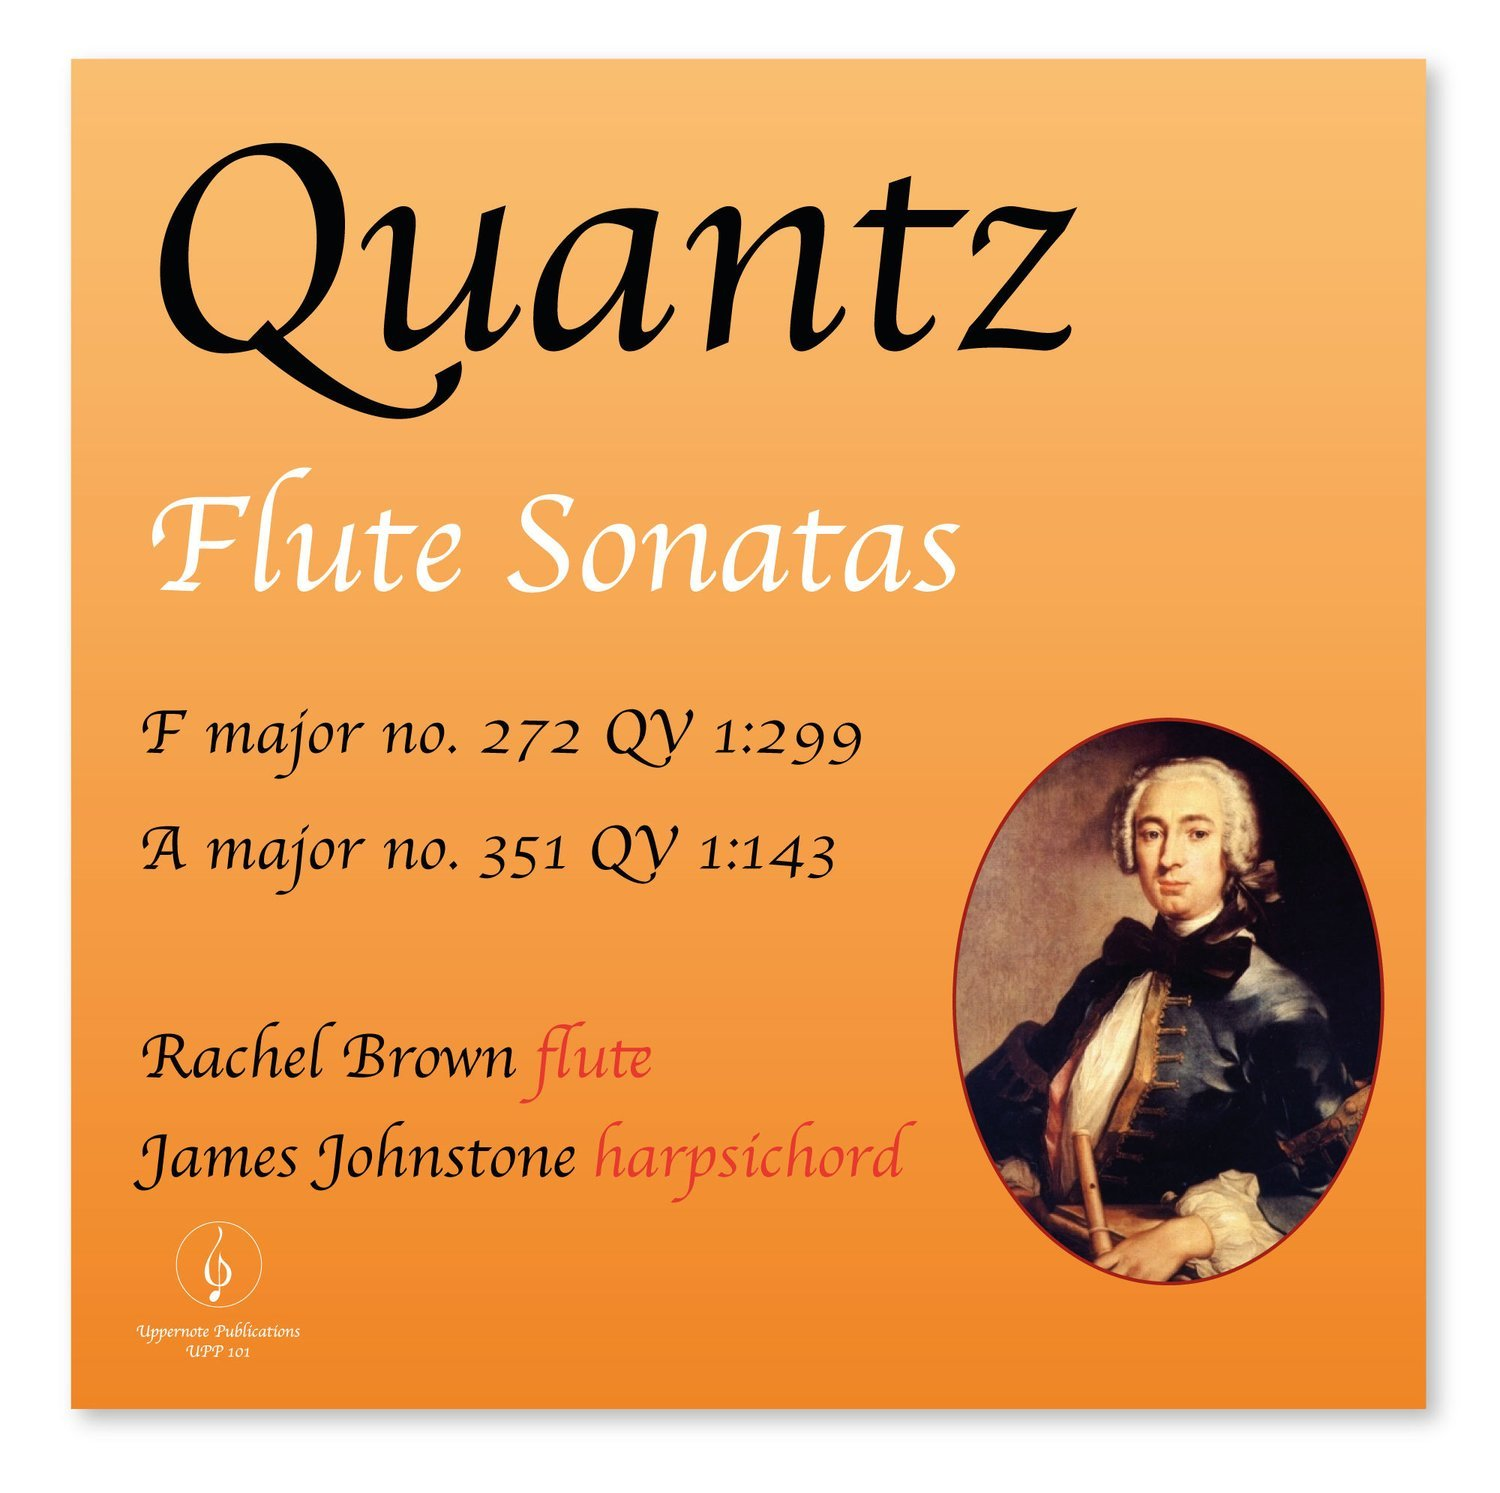 Quantz 2 Flute Sonatas  digital download  Flute Sonata in F 272* Flute Sonata in A 351 *  ABRSM Grade 8 syllabus - Download